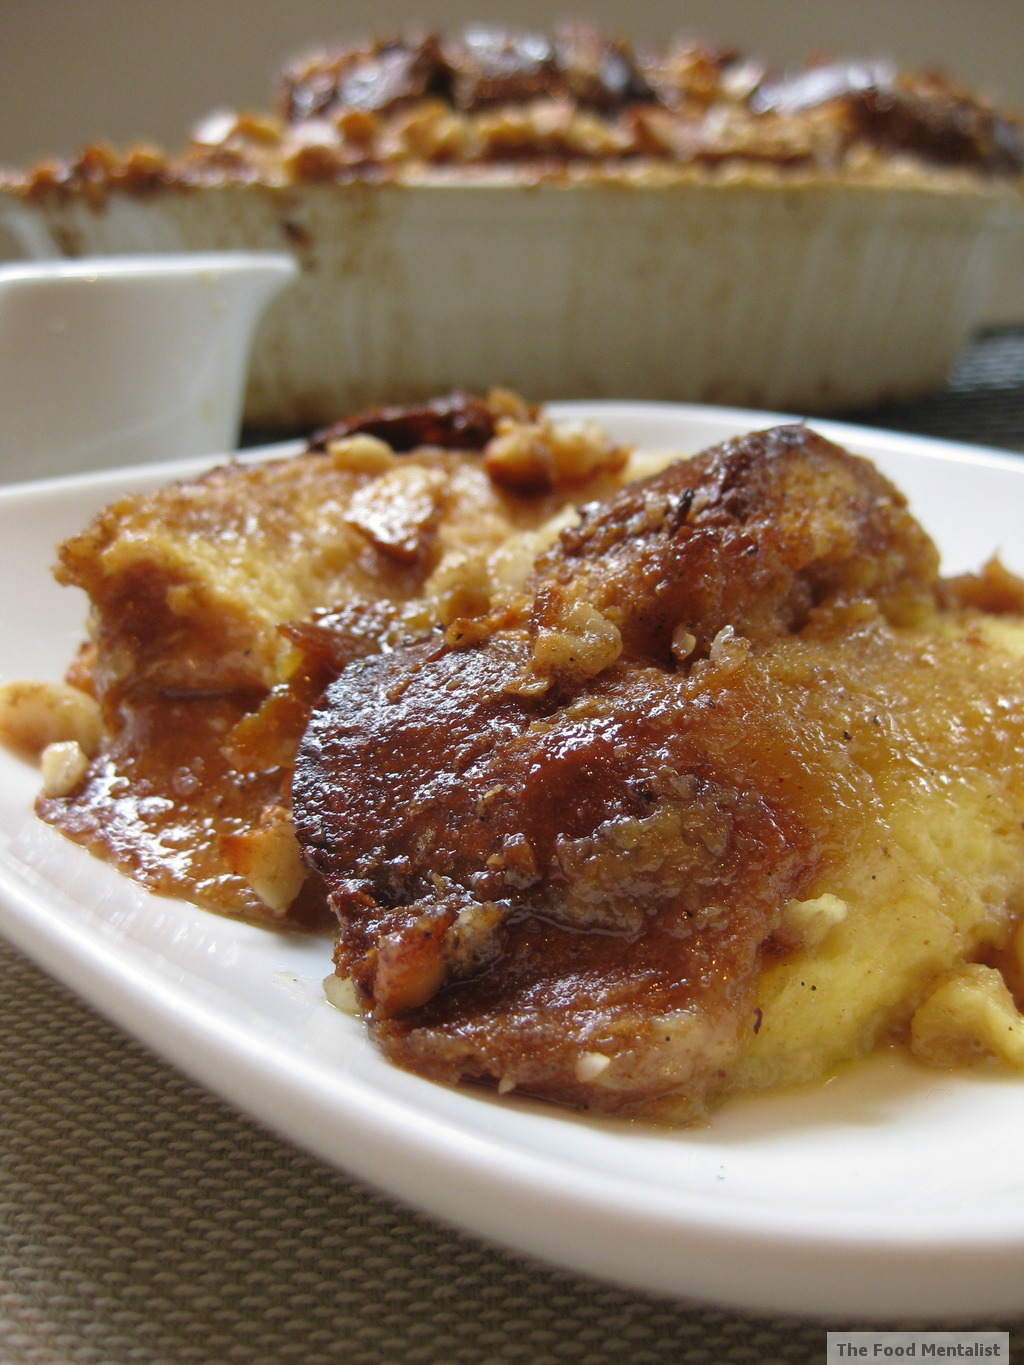 The Food Mentalist: Macadamia Praline Bread & Butter Pudding